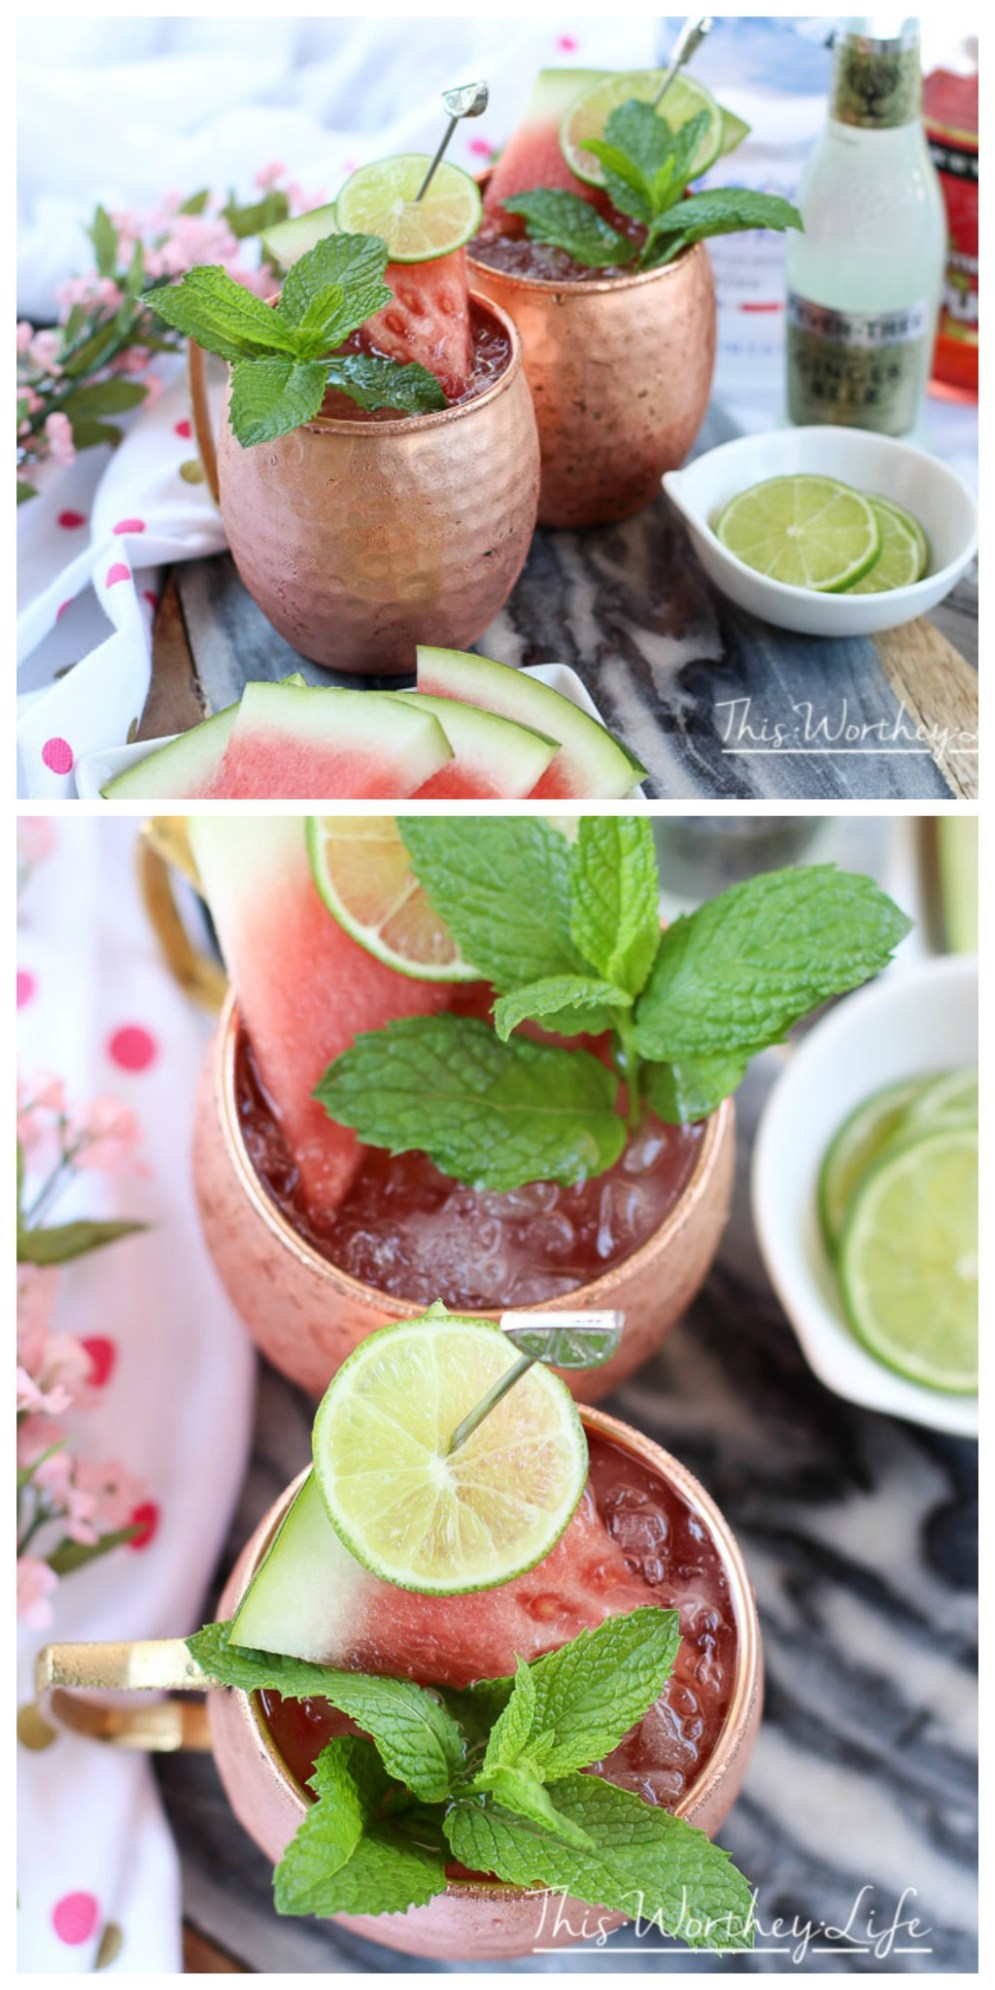 Take your classic Moscow Mule recipe, and put a twist on it with watermelon. This Watermelon Moscow Mule is flavored with Grey Goose Vodka, ginger beer, watermelon, and watermelon pucker. Keep reading to get this summer cocktail recipe on the blog!